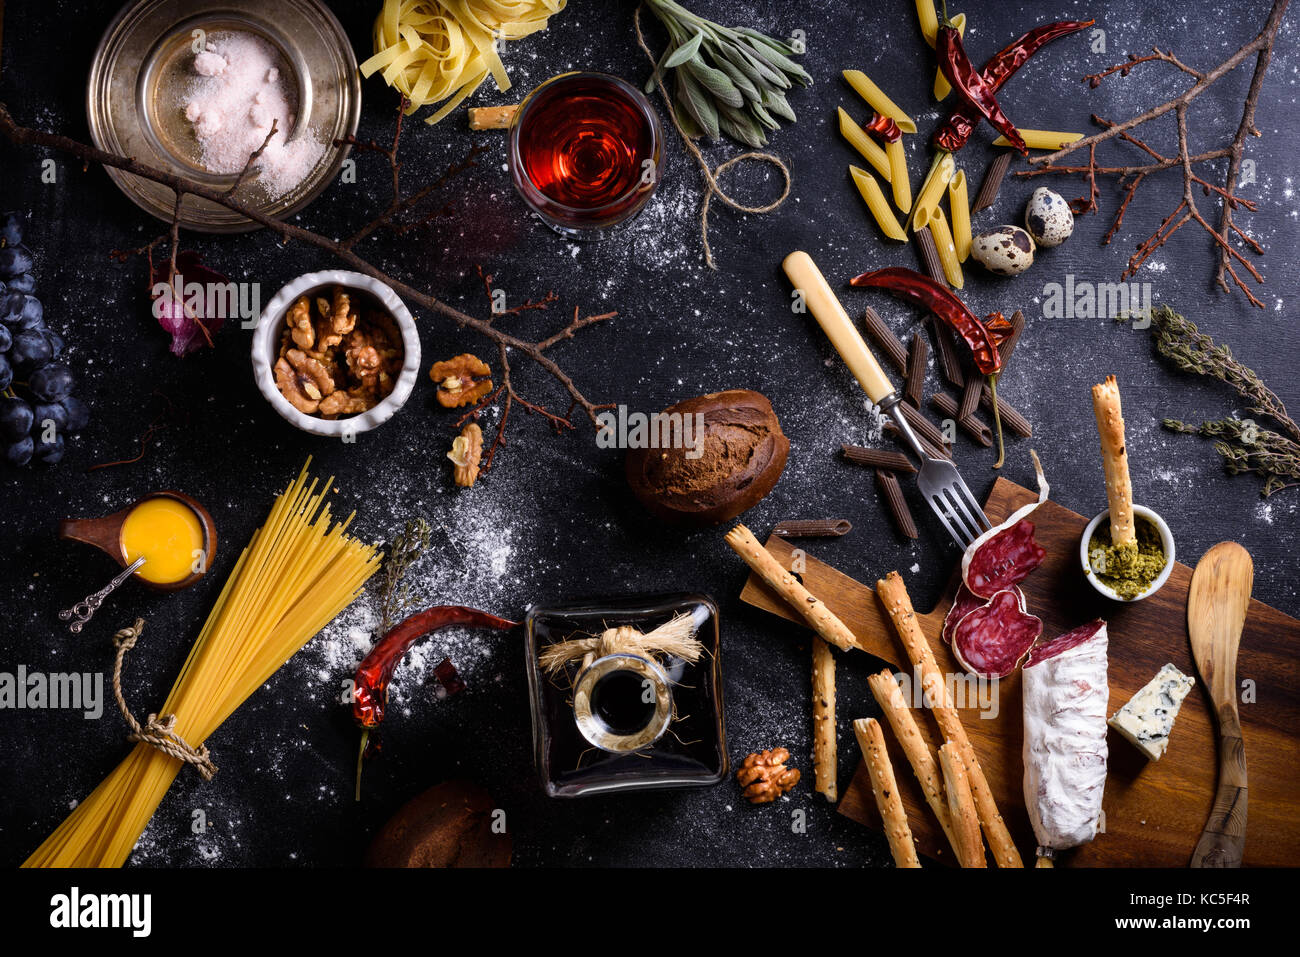 Appetizer, salami and cheese served with pasta and red wine on dark table. Italian cuisine ingredients. Top view. - Stock Image